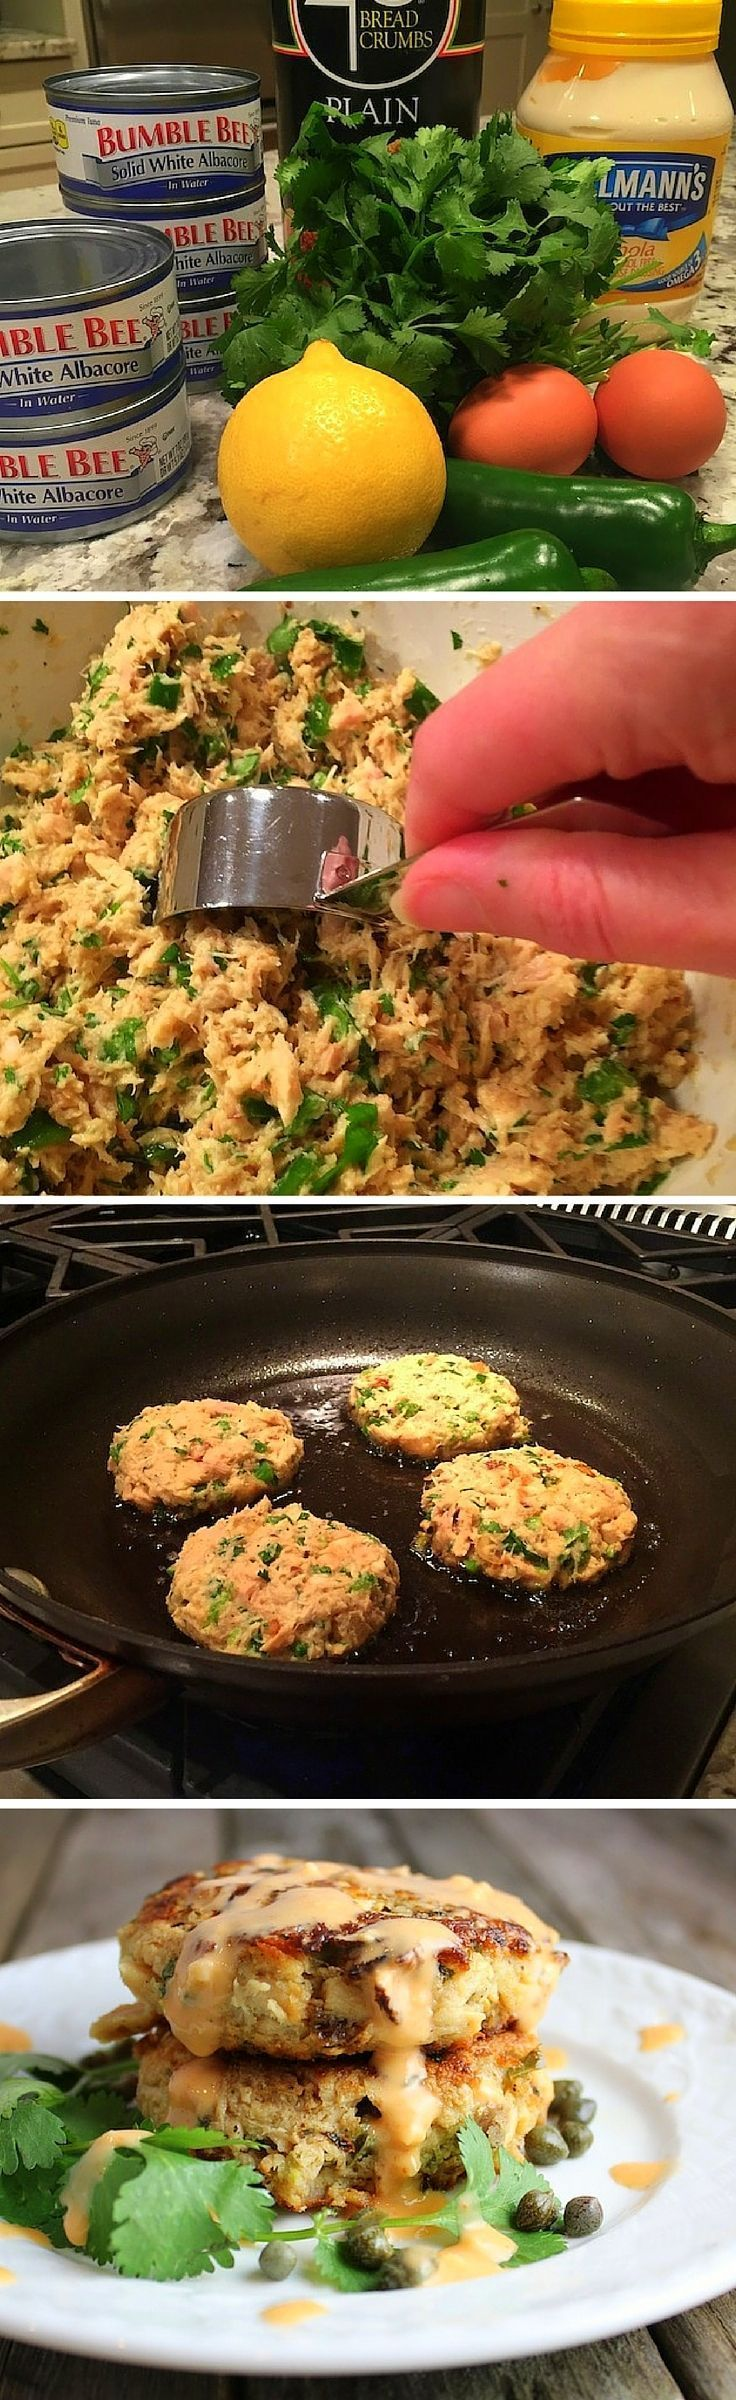 These simple healthy tuna cakes are delicious, budget friendly, and they feed an army! Low carb, low calorie, & clean eating. #eatclean #tuna